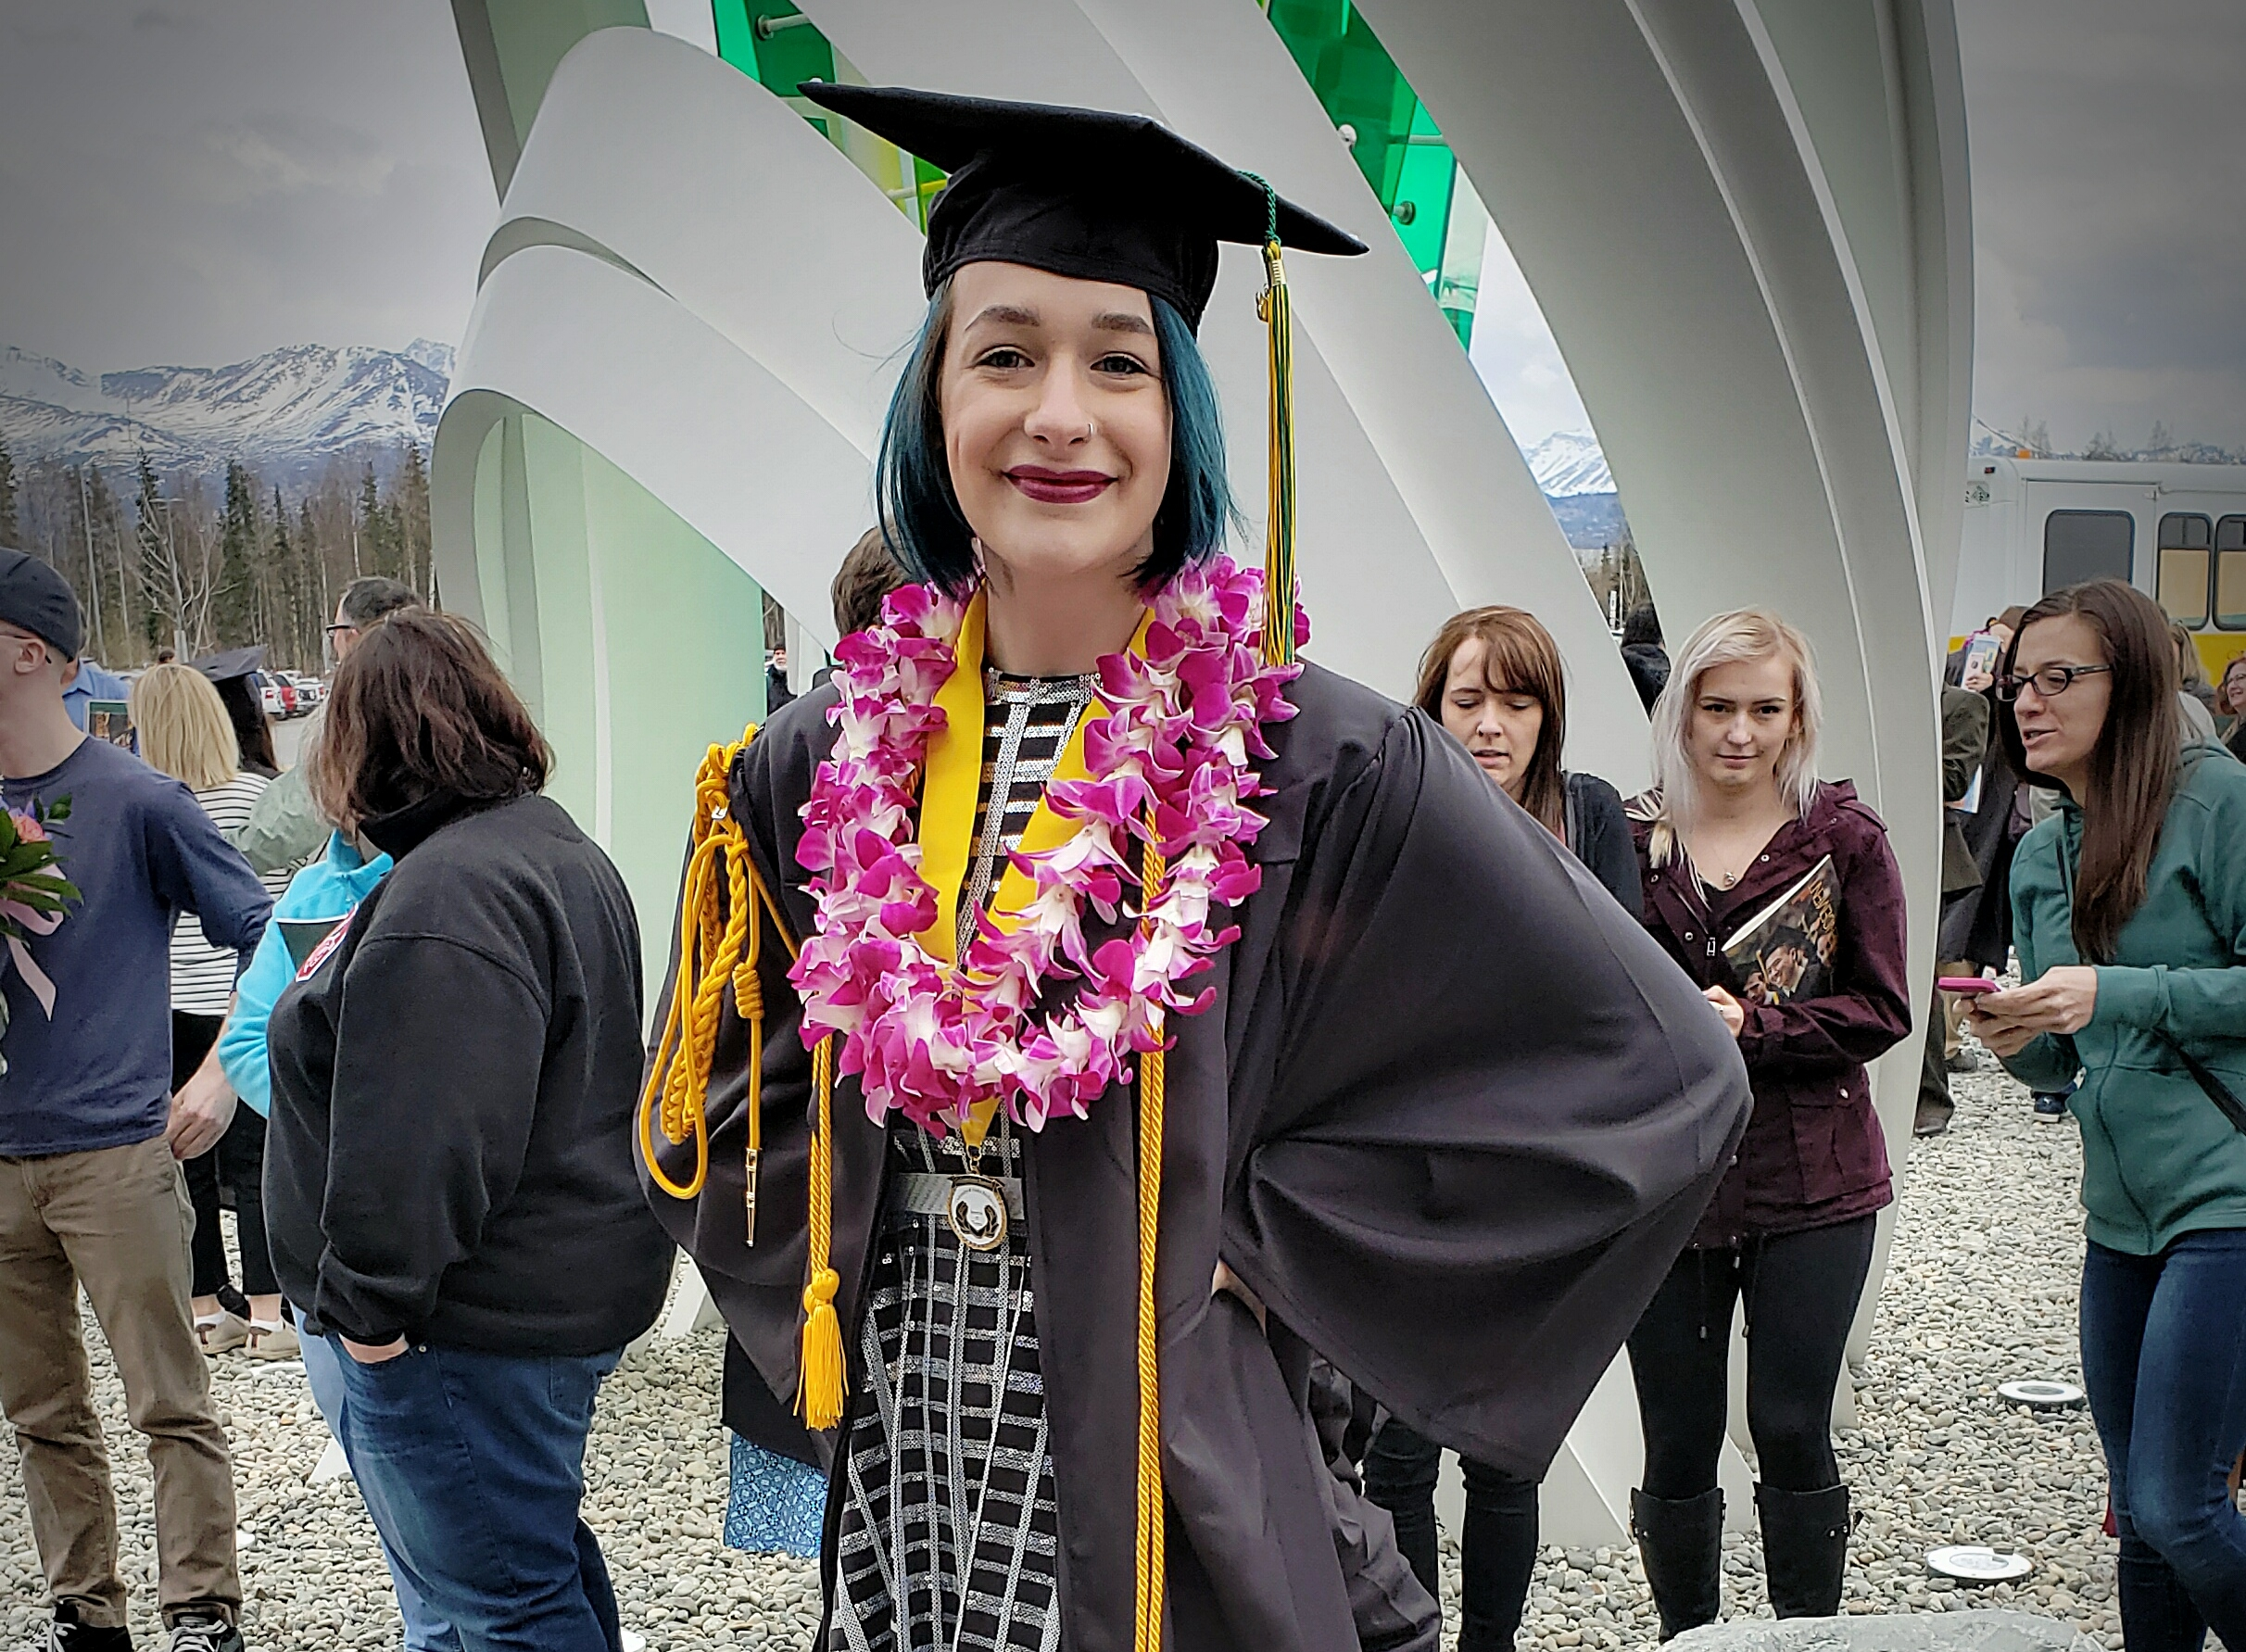 Katrina Chertkow graduated summa cum laude from the University of Alaska Anchorage earlier this month with a bachelor's degree in sociology. Photo credit: Scott Chertkow